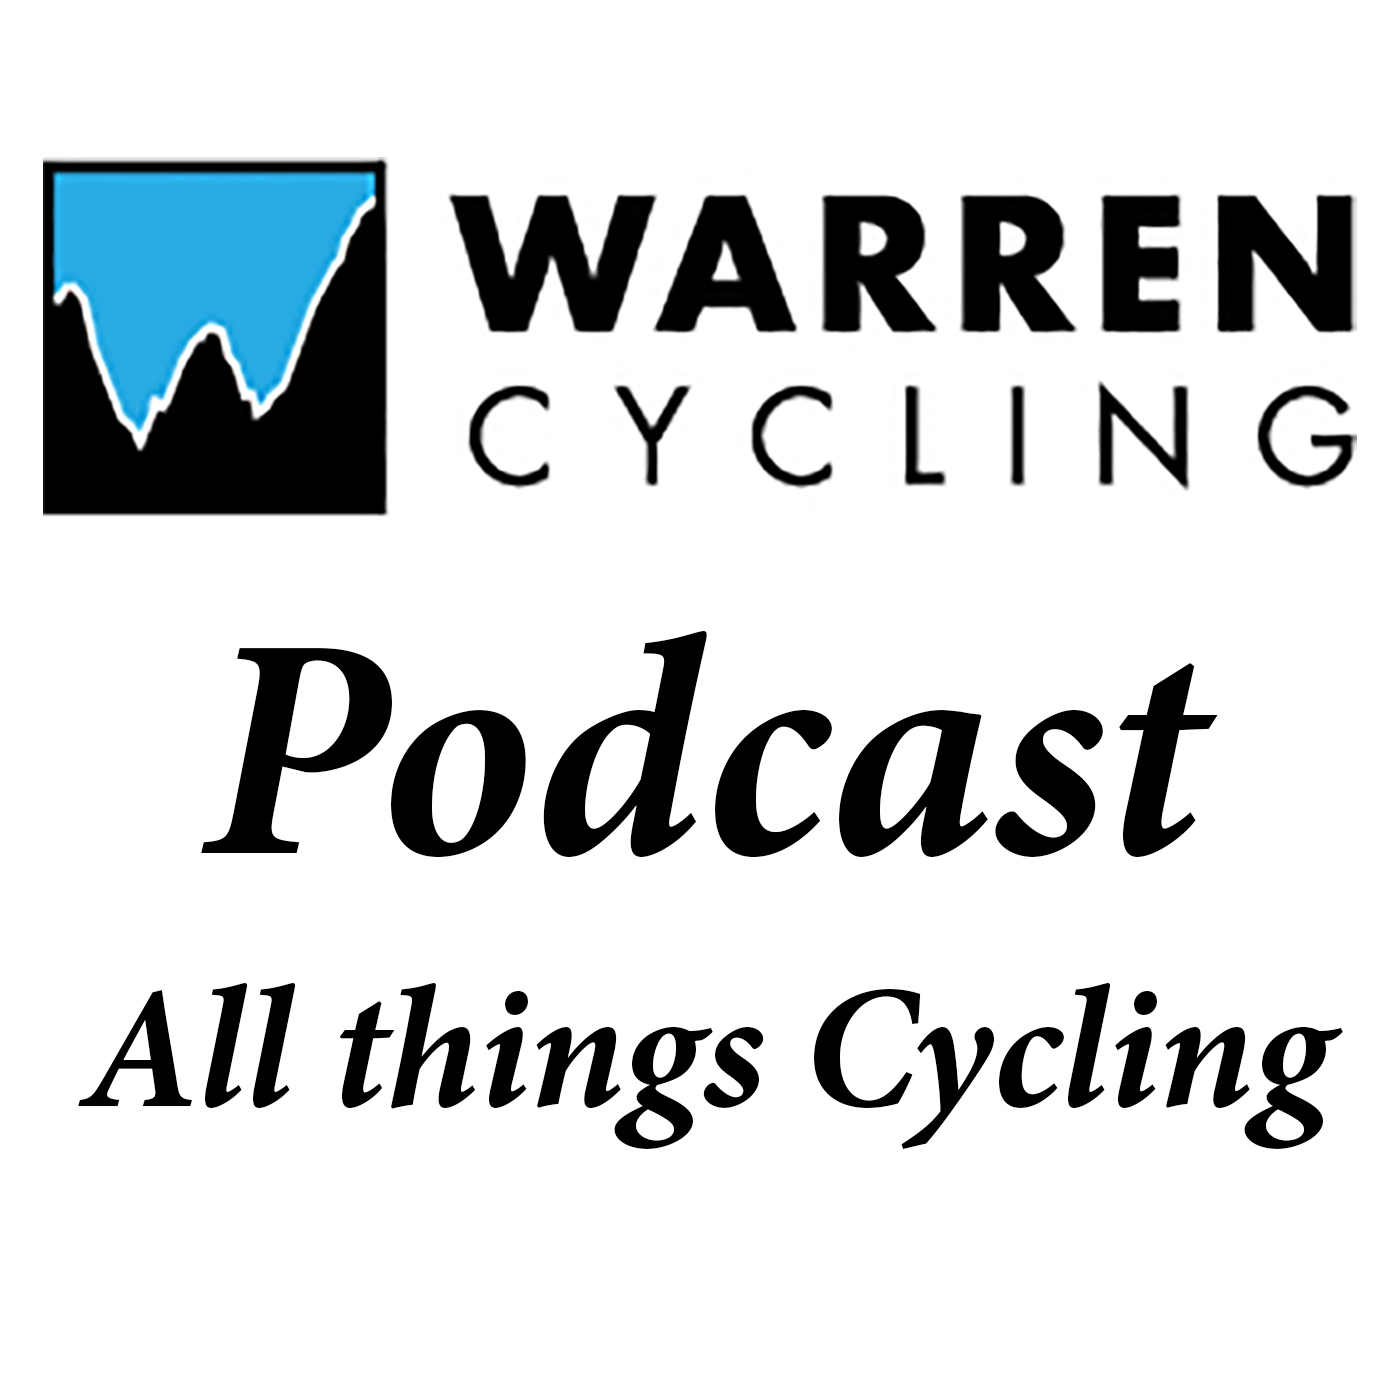 Warren Cycling Podcast Episode 239: Road Racing in France show art